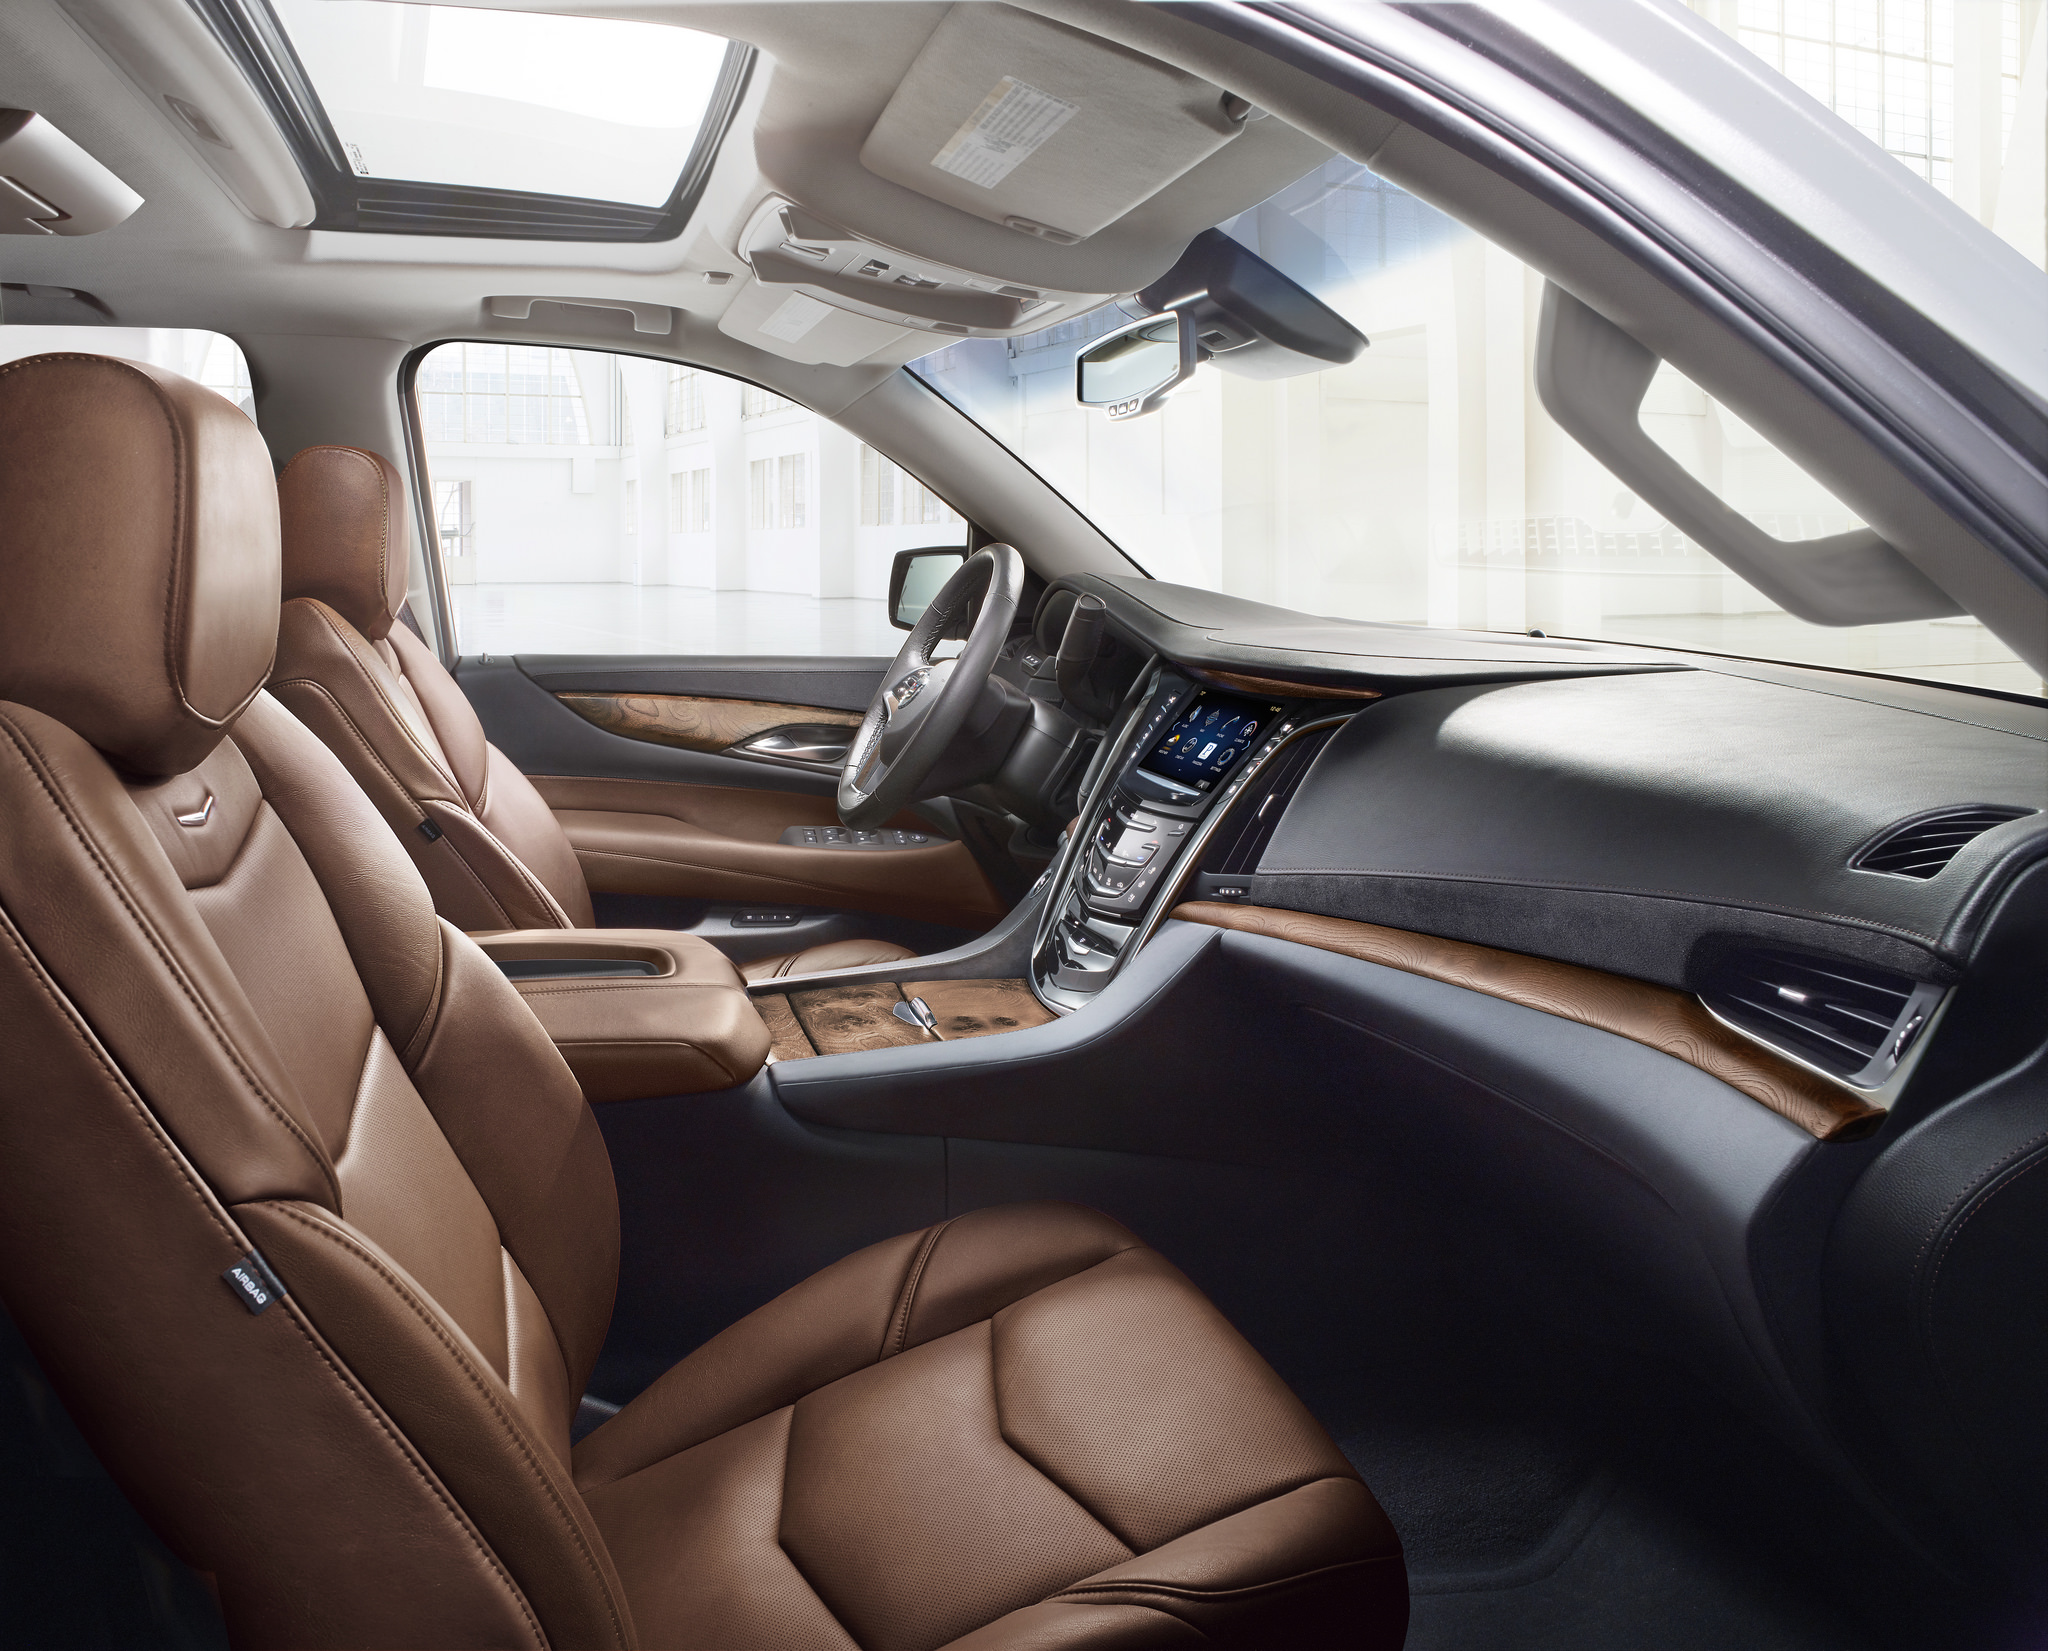 Cadillac Massage Seats Help You Relax In Your Luxury Ride Carl